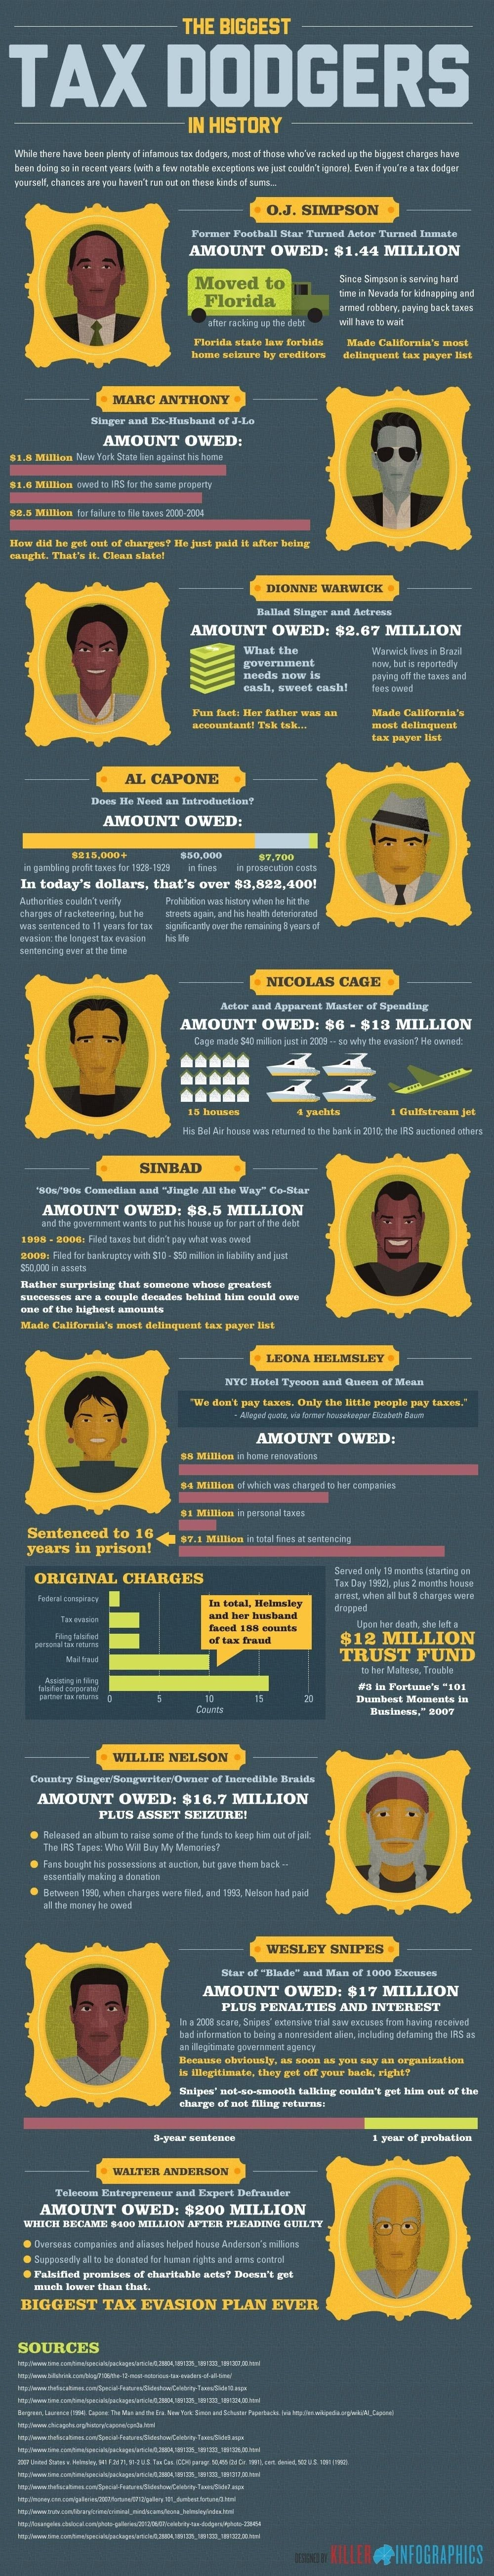 Tax The biggest tax evaders in history  #infographic